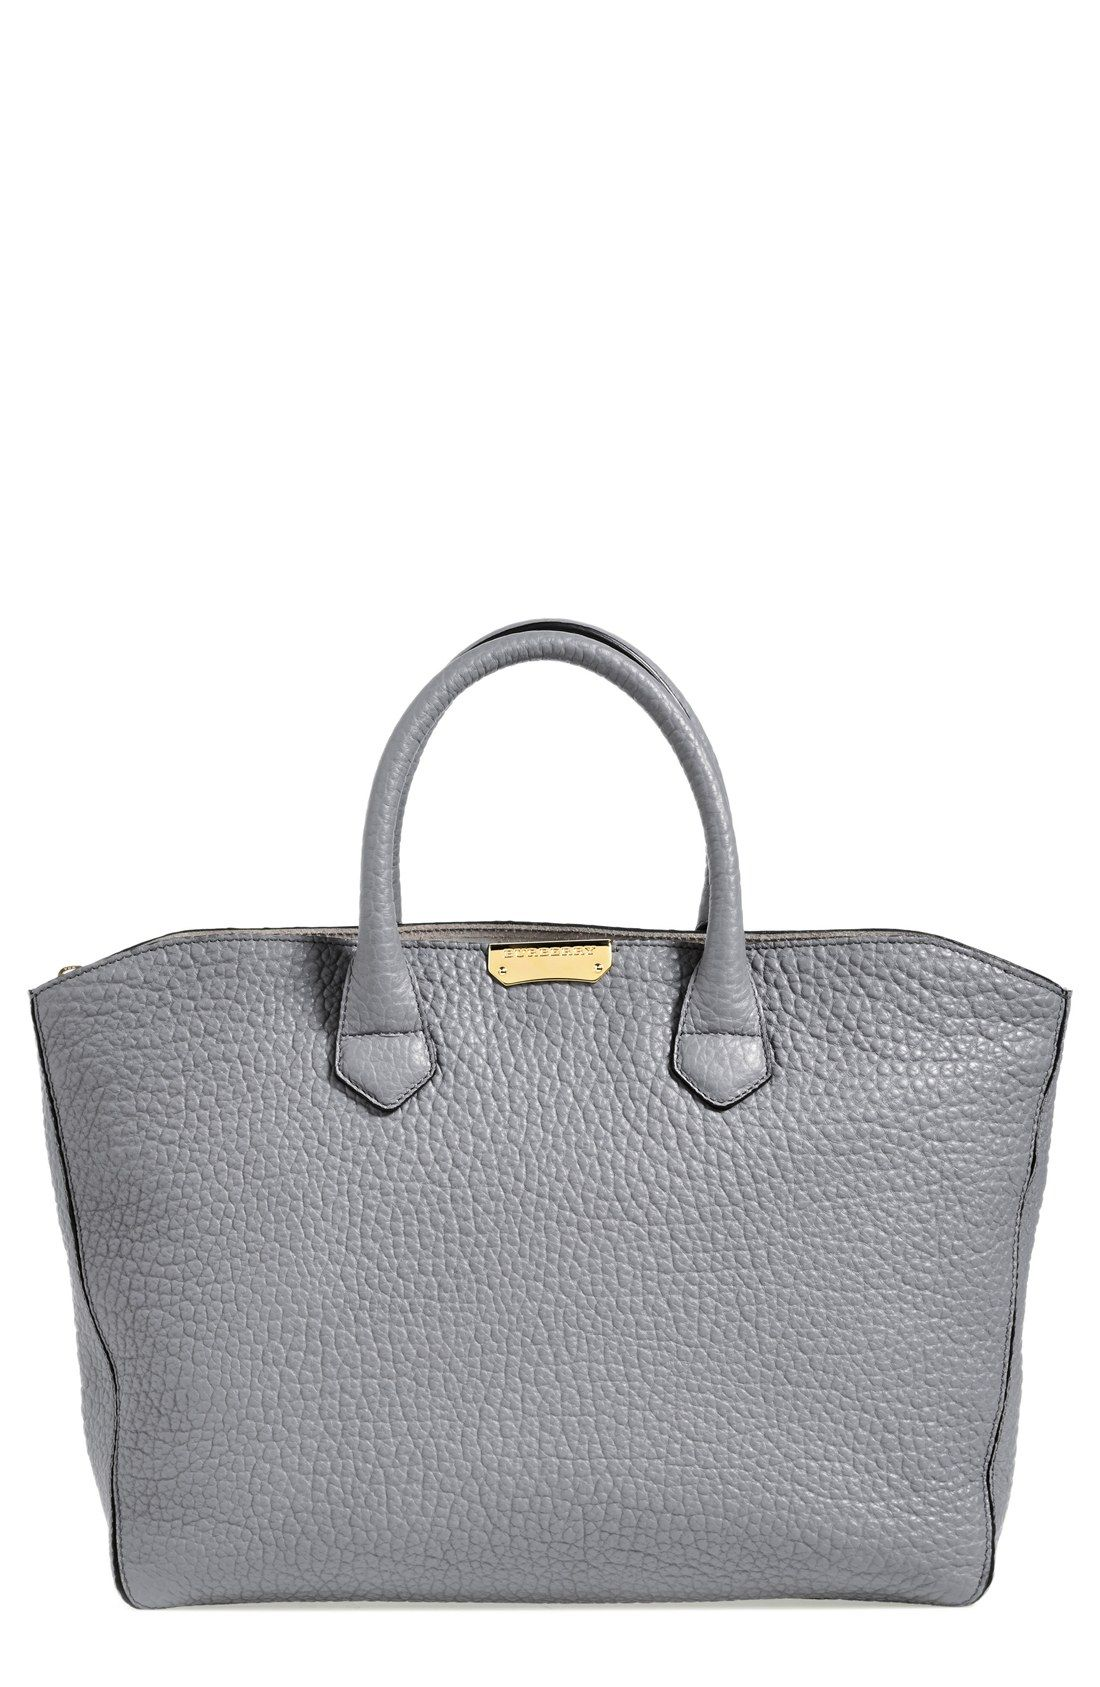 161debc5ed86 ... 2015 Nordstrom Anniversary Sale. Home - coco kelley. Burberry   Dewsbury  Grain Leather Tote